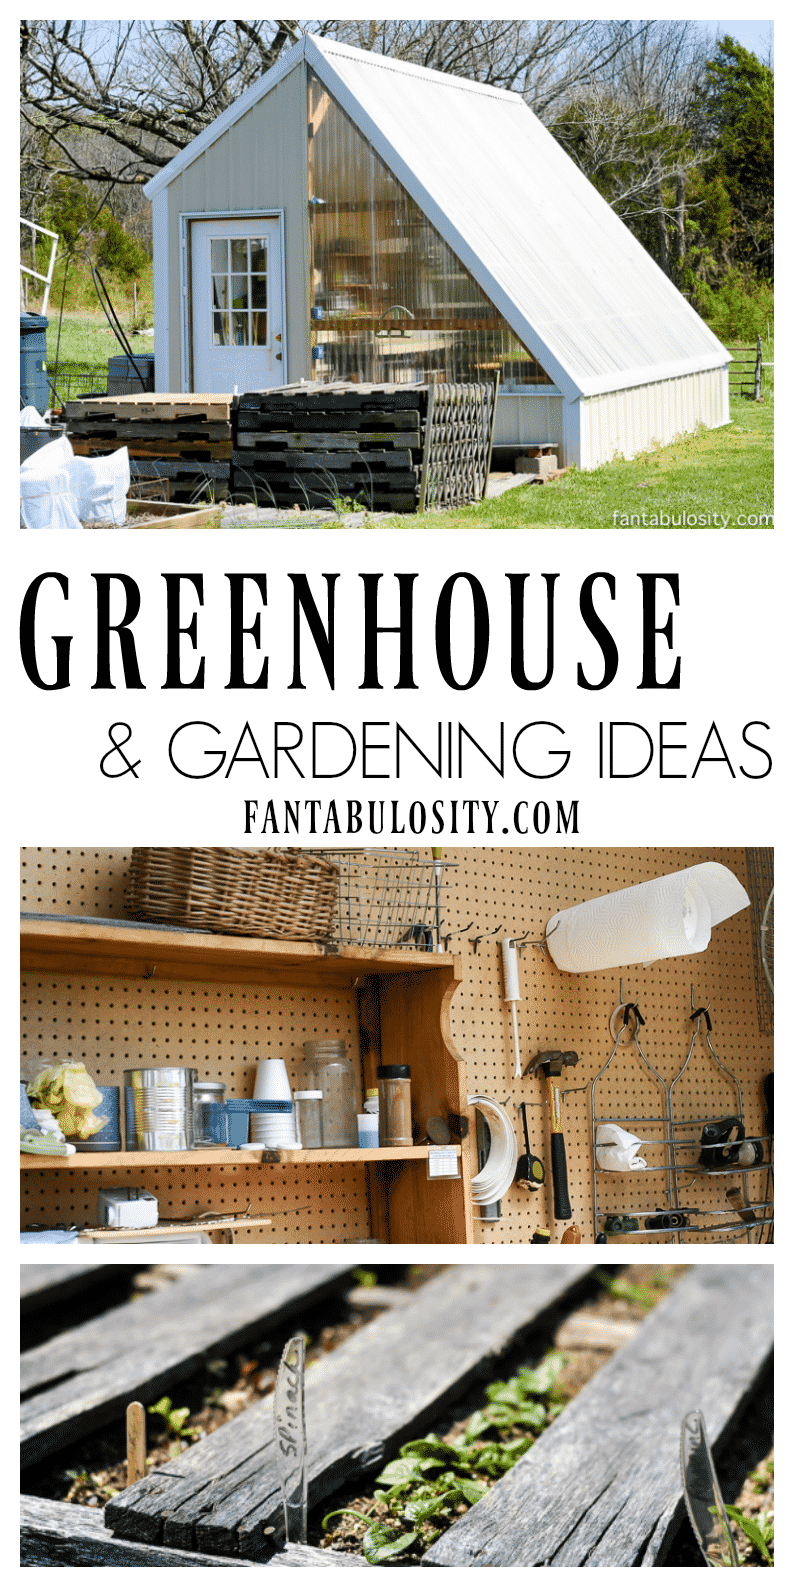 Greenhouse Gardening Ideas